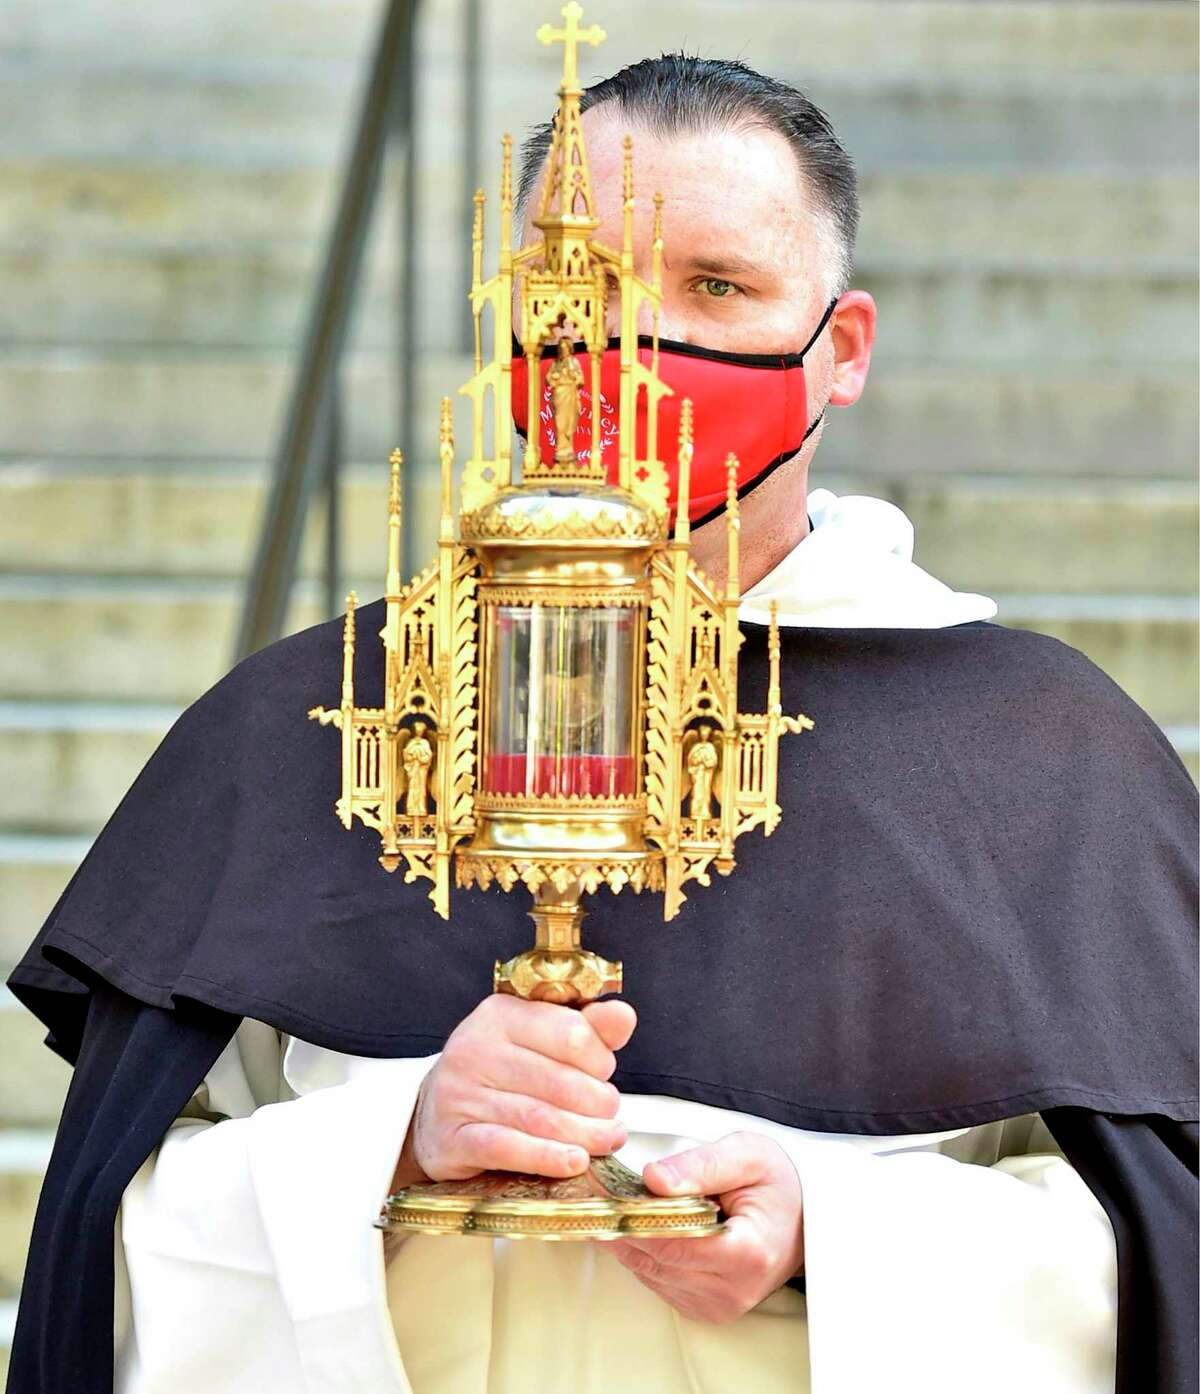 New Haven, Connecticut - Friday, October 30, 2020: Father Jonathan Kalisch, Prior of Dominican Community of St. Mary's Church, holds an encased portion of the backbone of Rev. Michael J. McGivney Saturday at St. Mary's Church in New Haven during a Beatification Mass for McGivney, founder of the Knights of Columbus. The mass is video streamed from the Cathedral of St. Joseph in Hartford around the world and also televised at St. Mary's Church in New Haven as the Catholic Church Saturday declared Father McGivney,